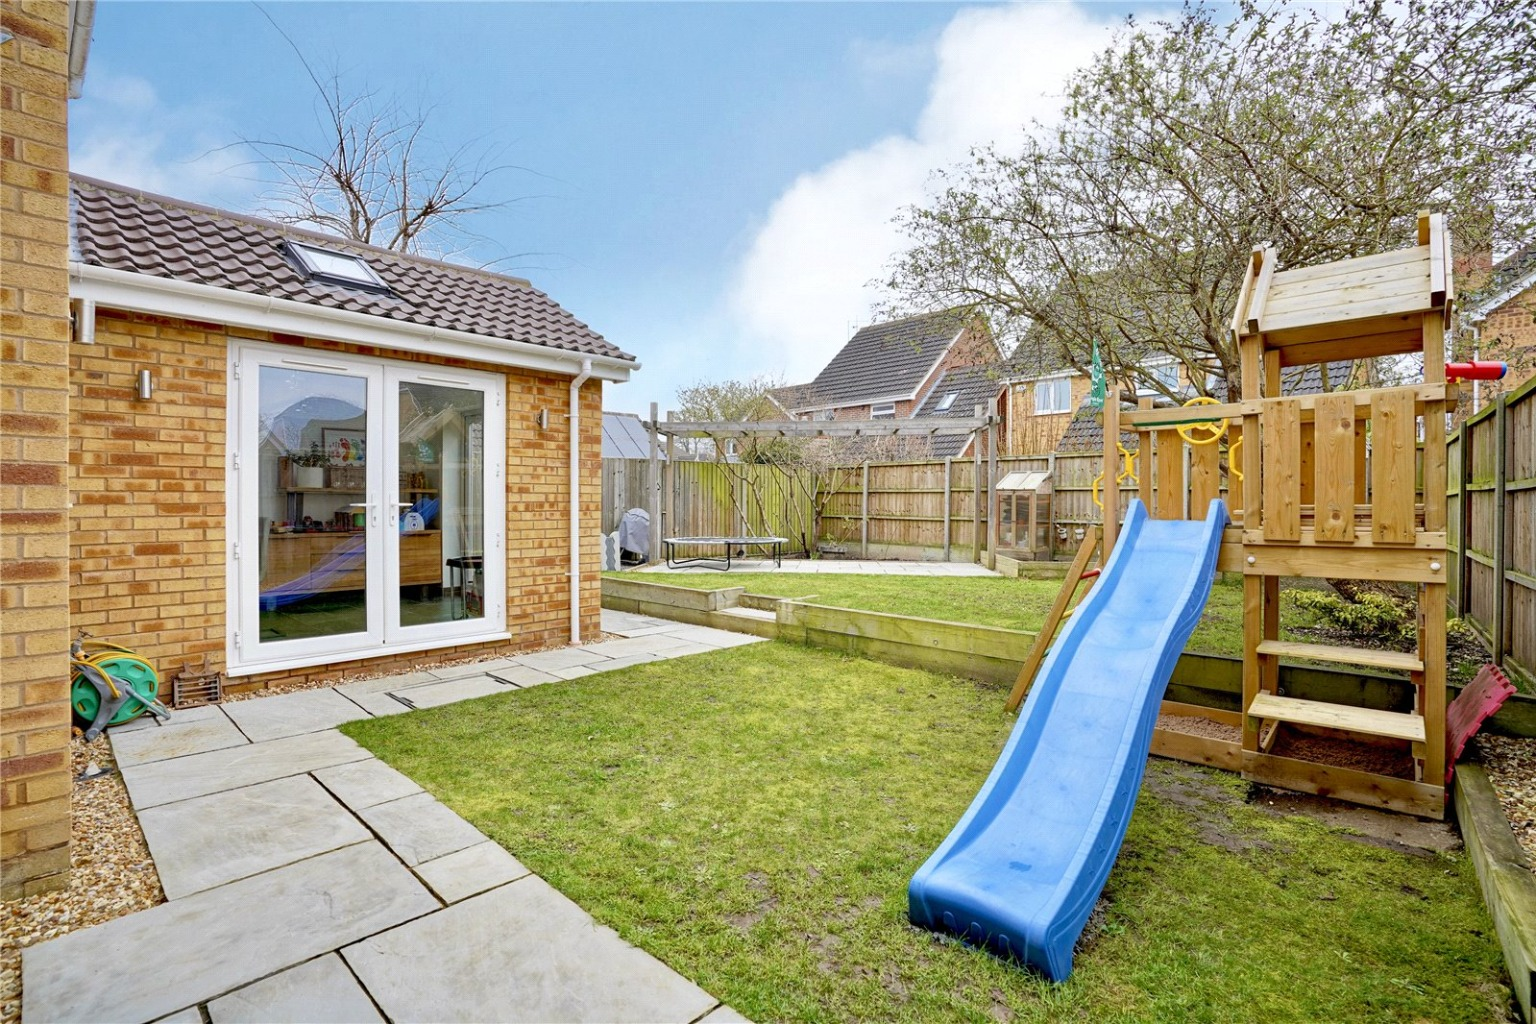 3 bed detached house for sale in Chamberlain Way, St. Neots  - Property Image 13